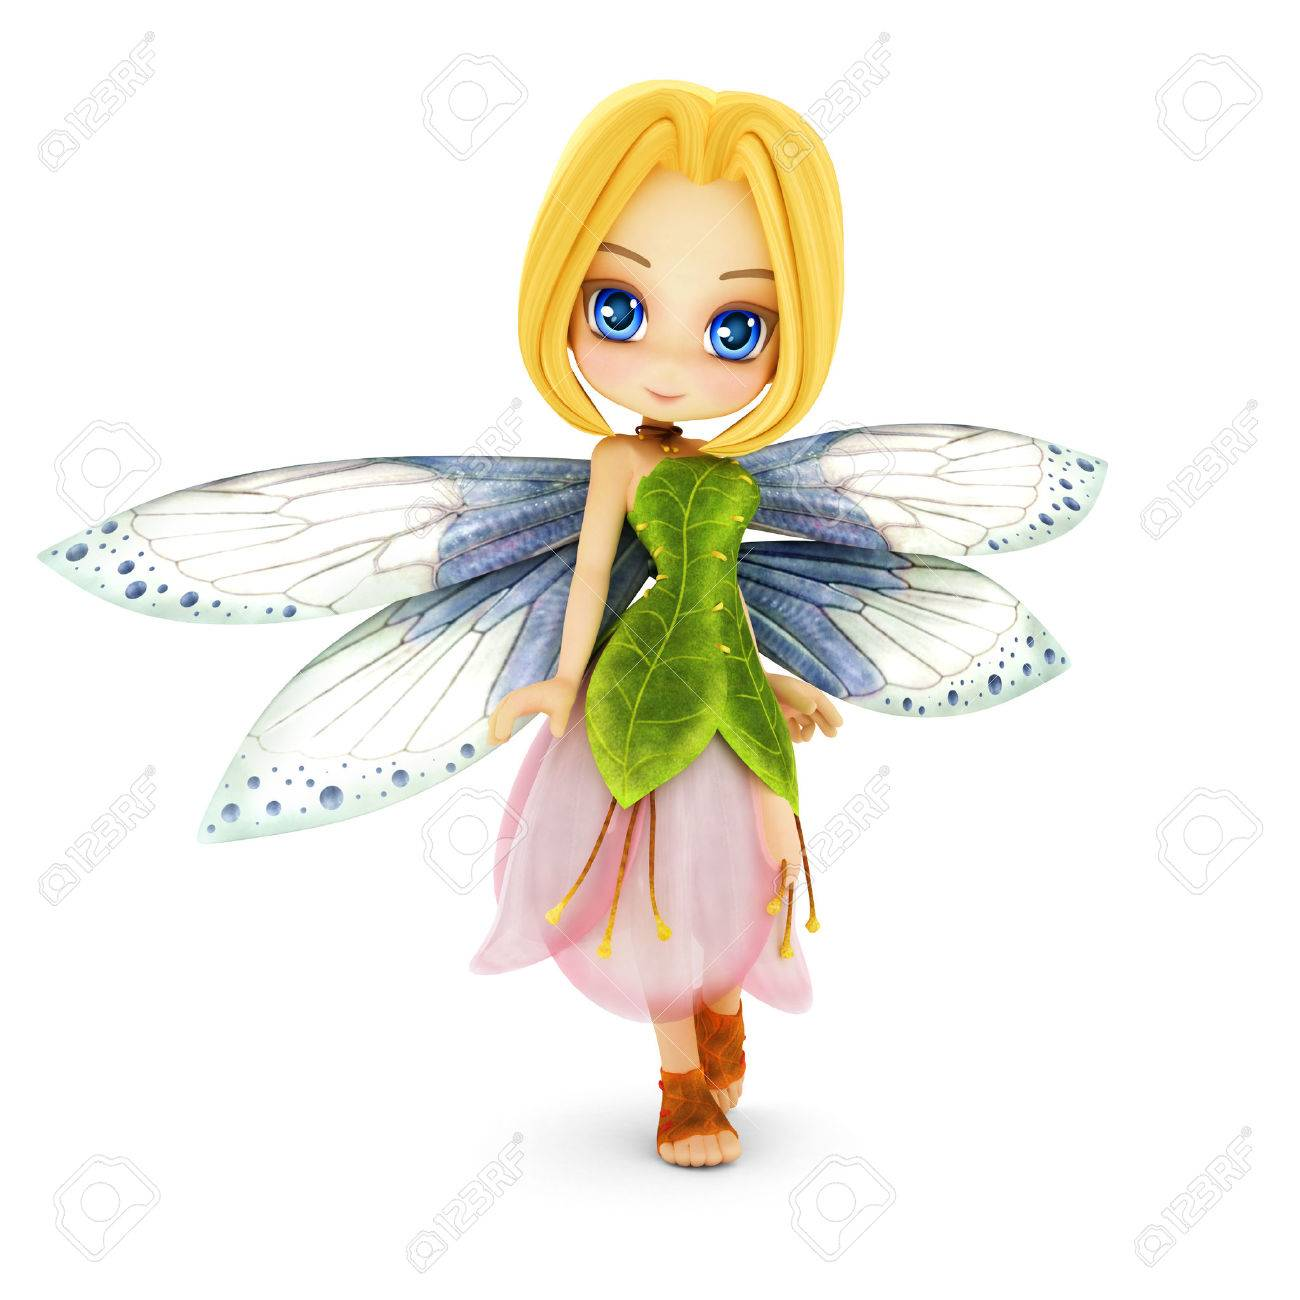 Cute toon fairy with wings smiling on a white isolated background. Part of a little fairy series. Standard-Bild - 43824423